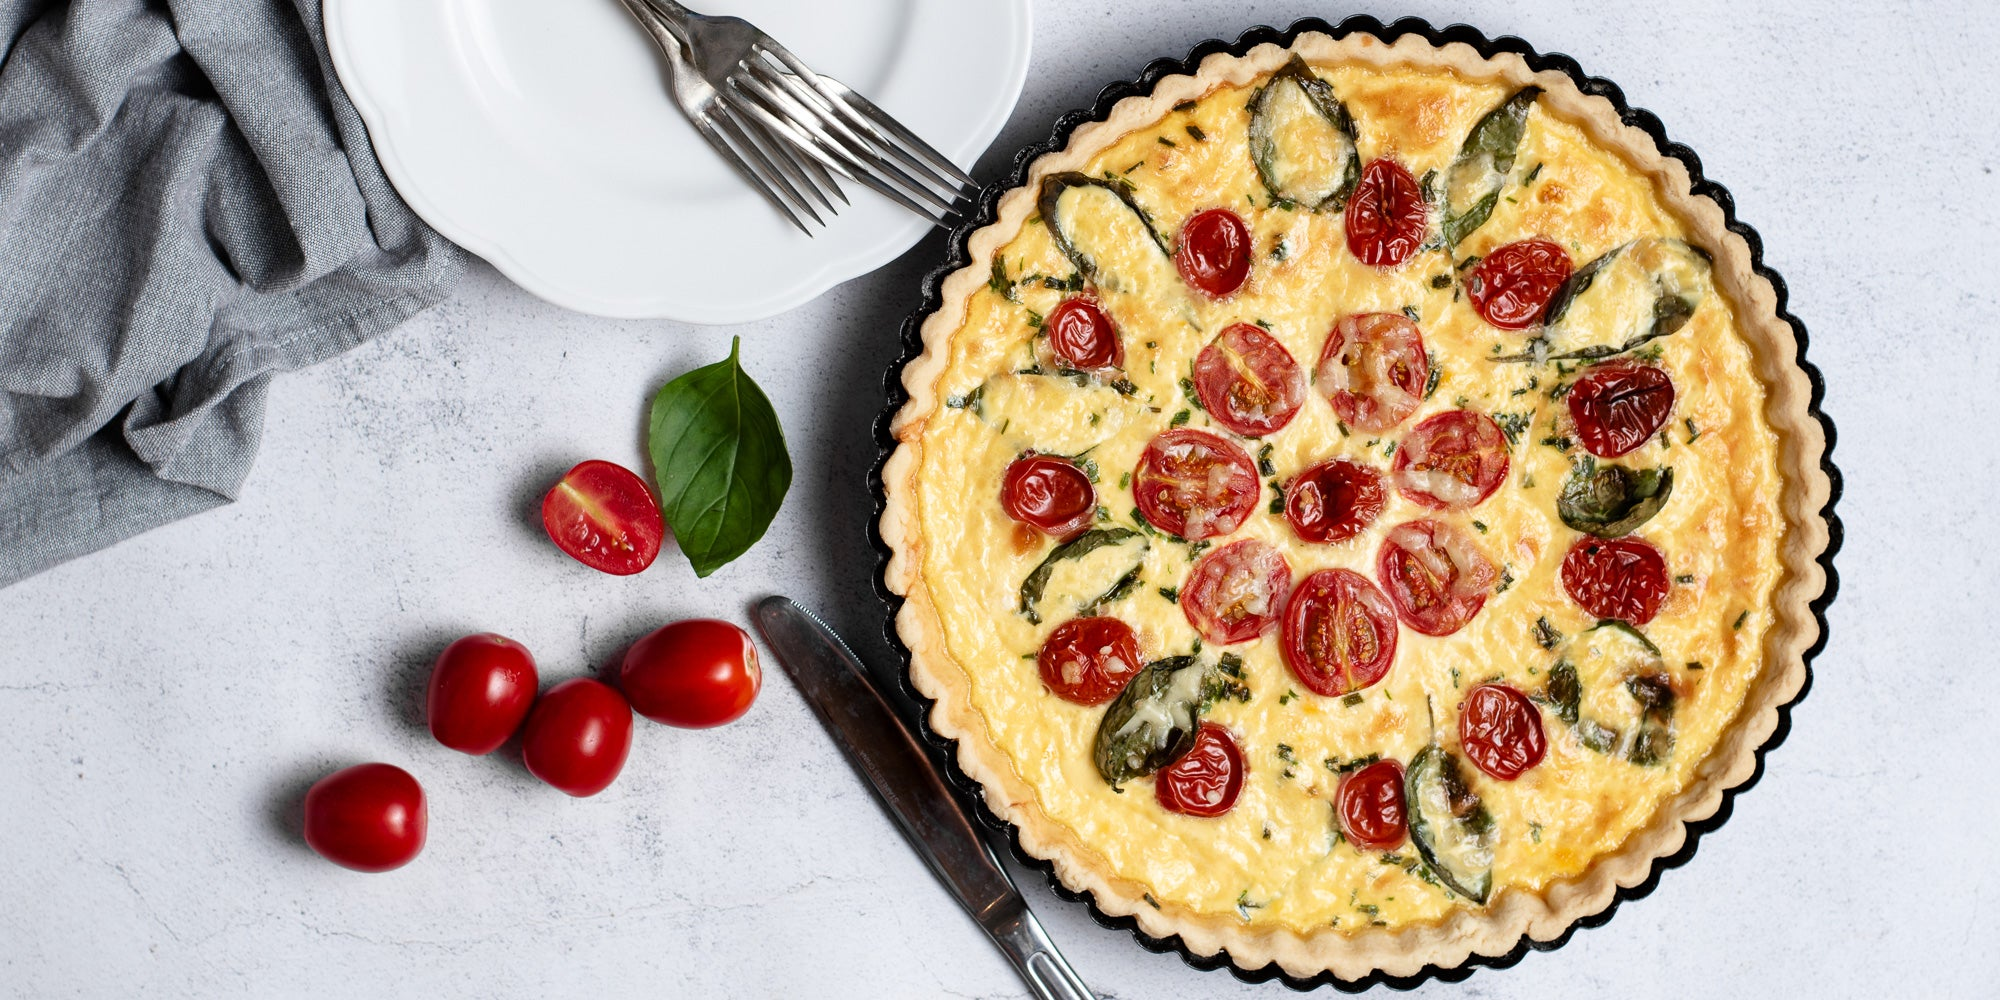 Flay lay view of a Cheese & Tomato Quiche with two forks ready to serve.